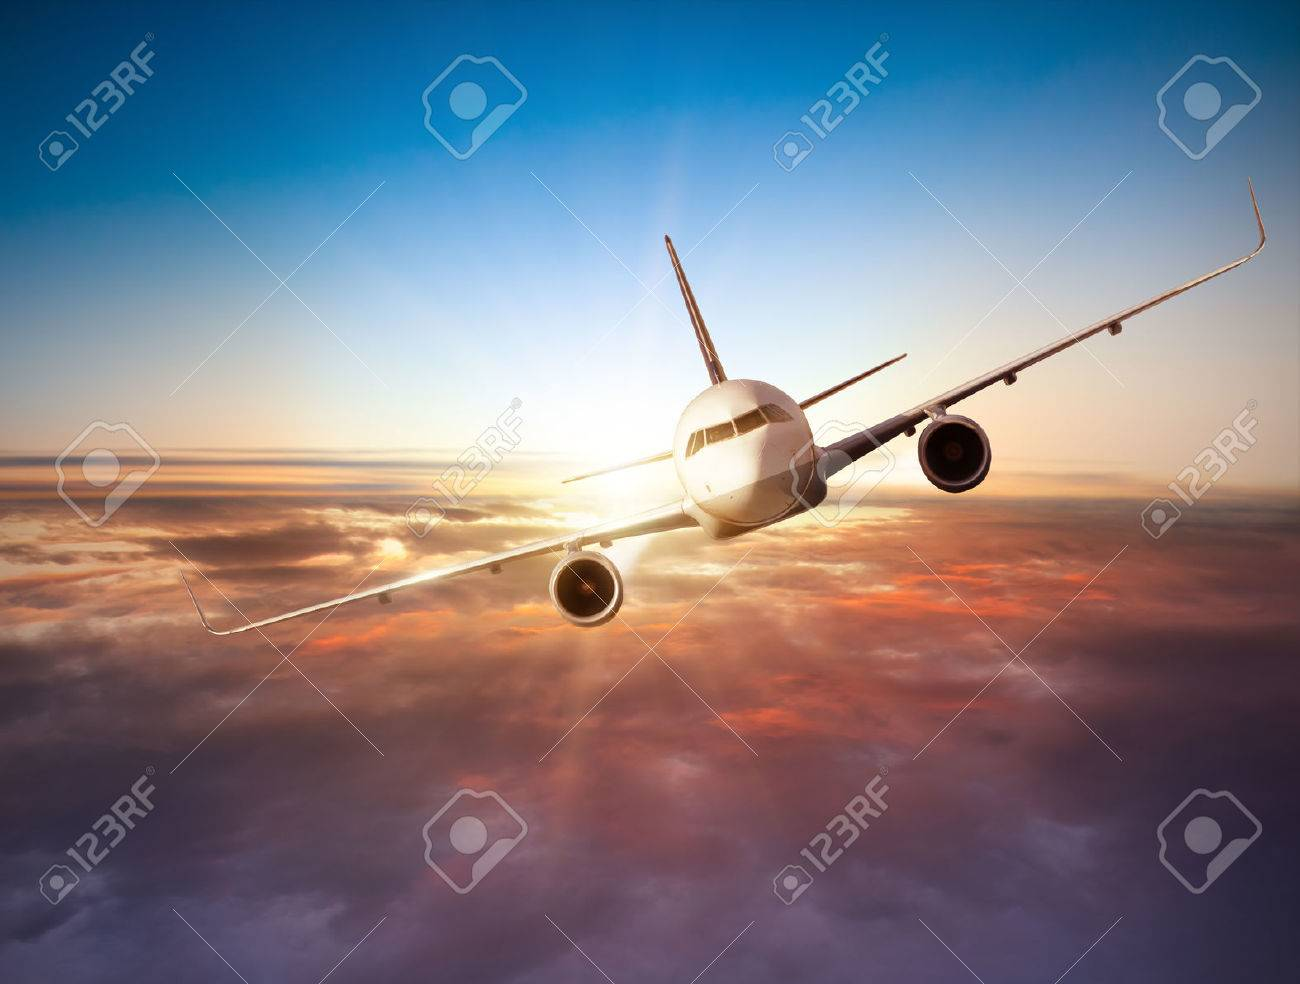 Commercial airplane flying above clouds in dramatic sunset light - 54624094